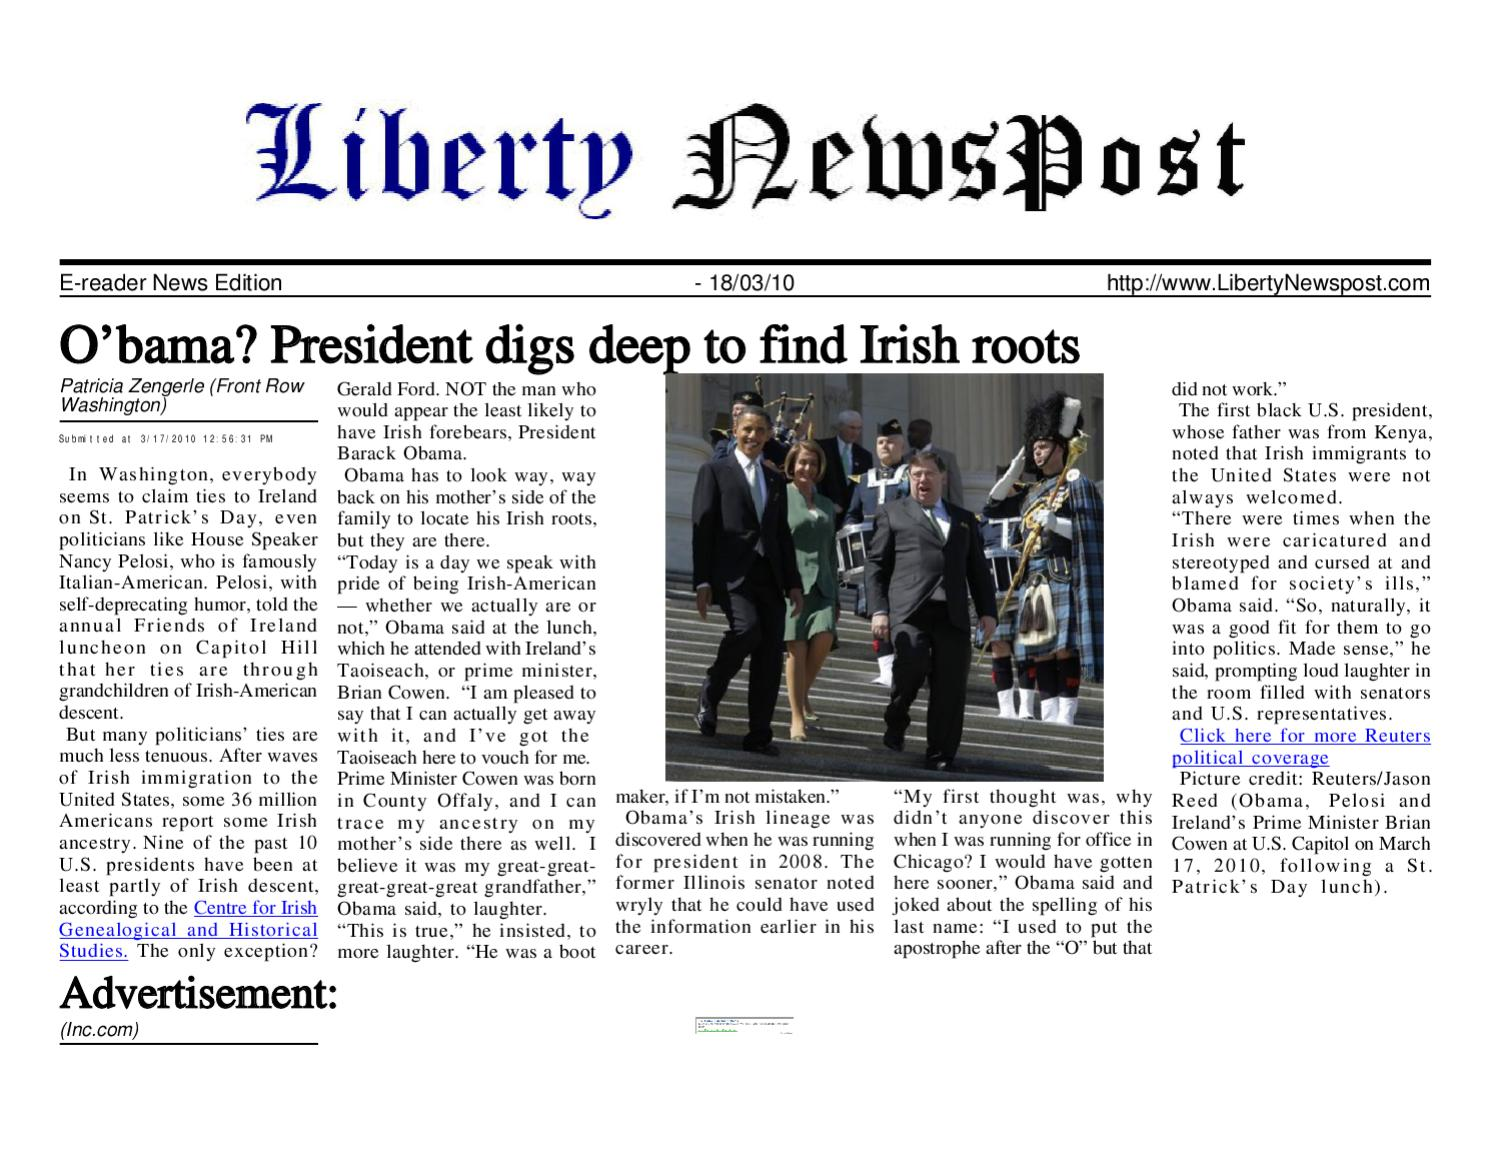 Liberty newspost mar 18 10 by liberty newspost issuu fandeluxe Gallery